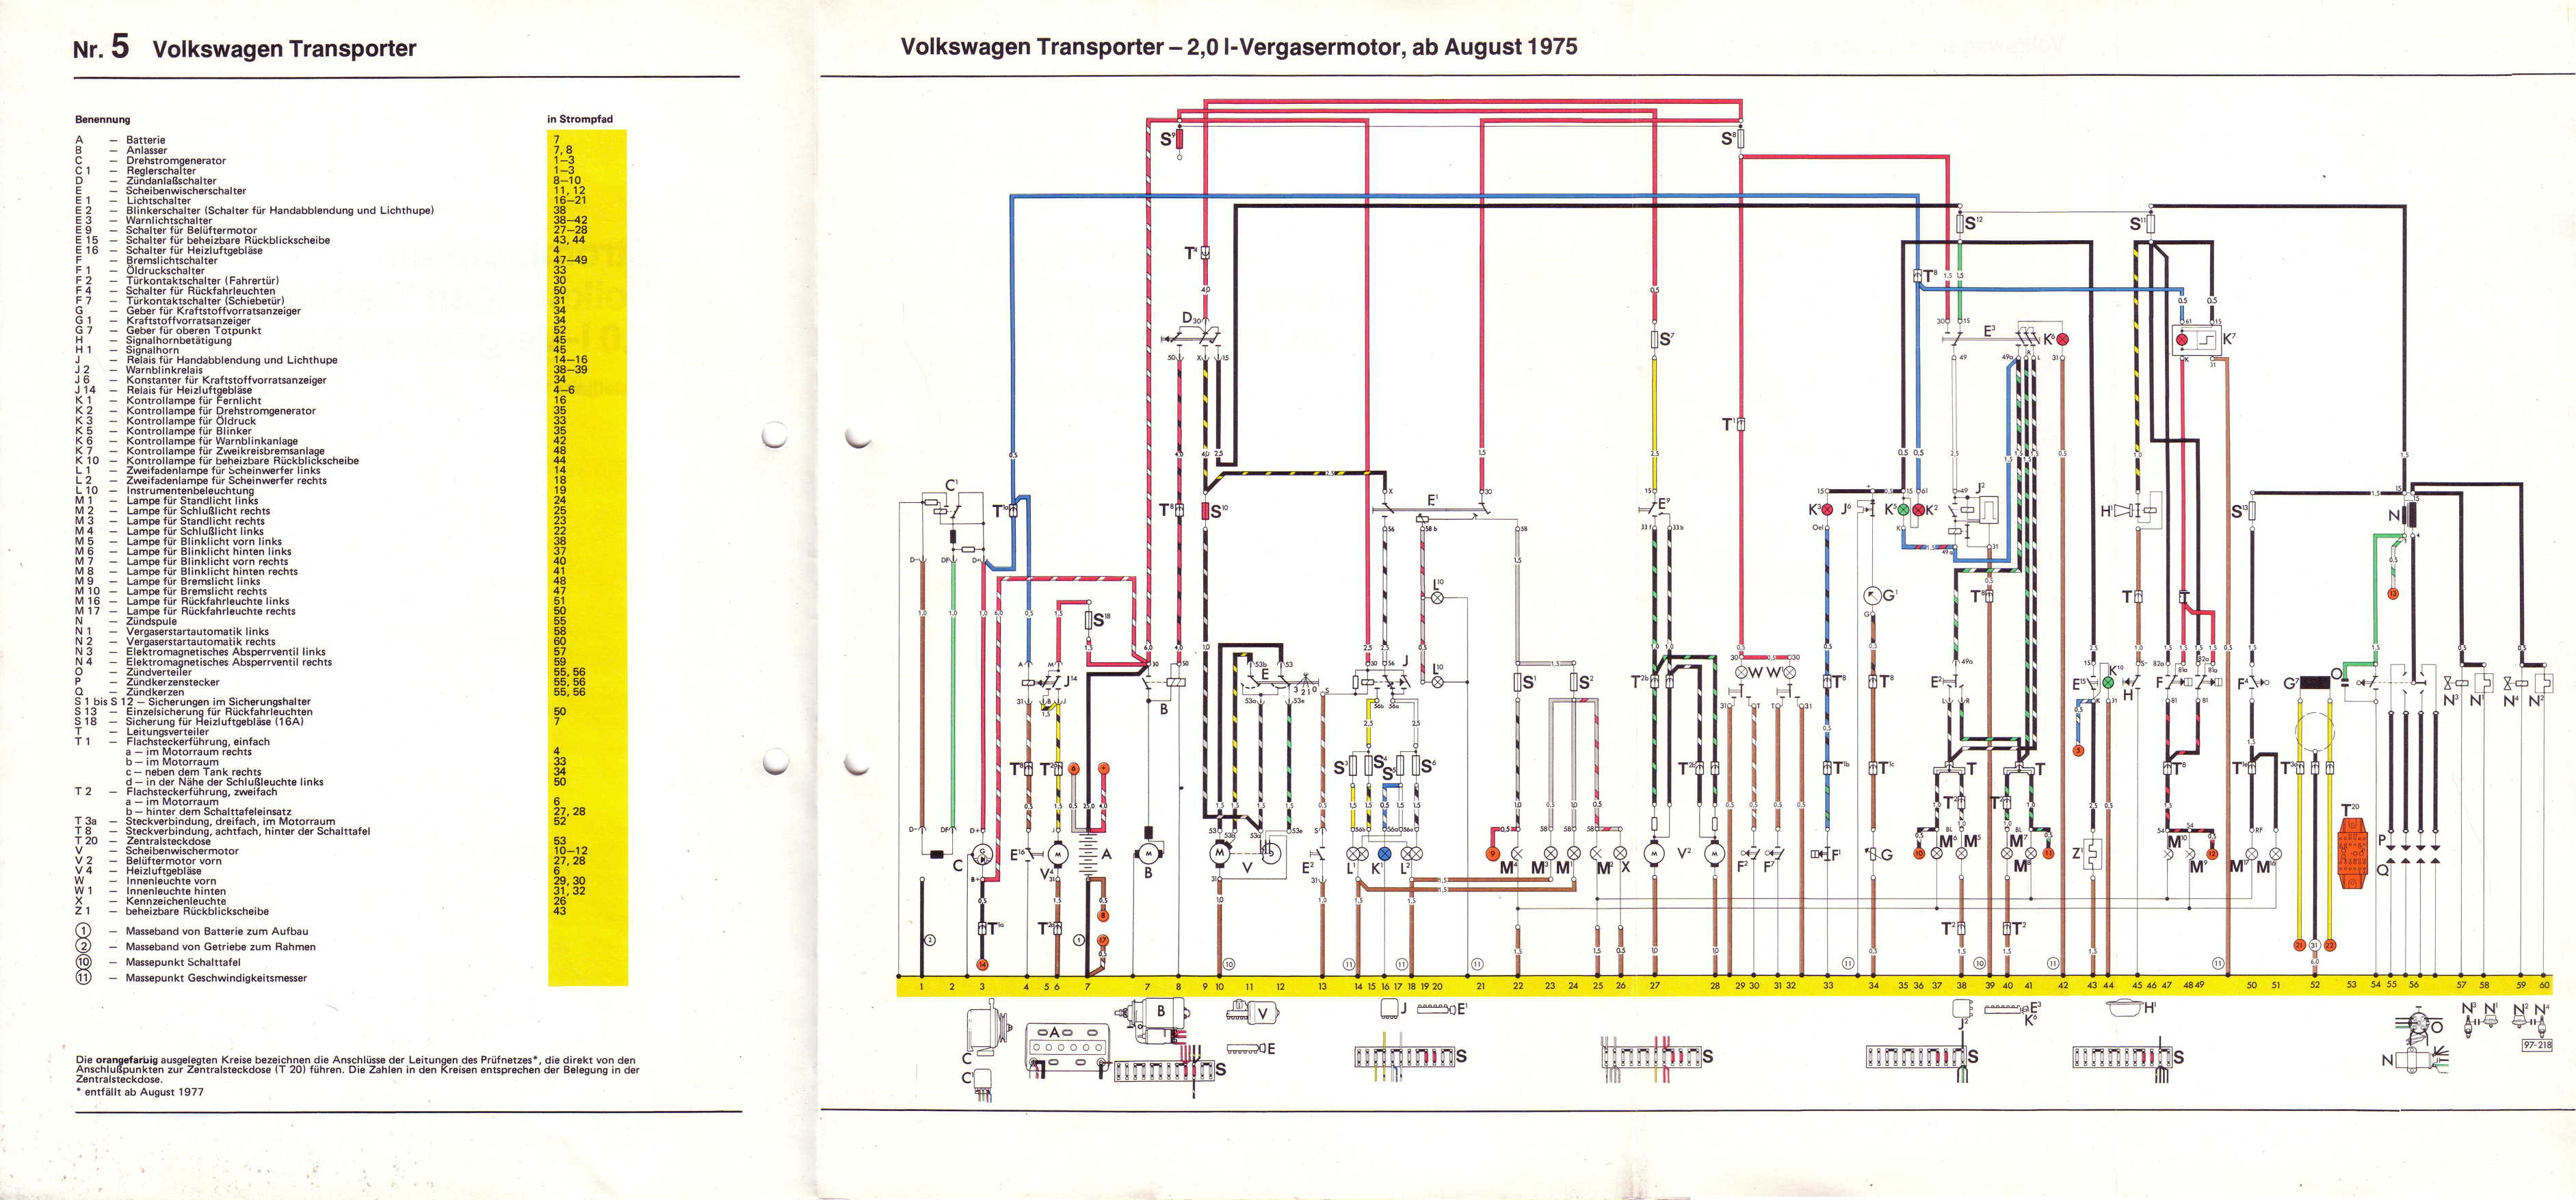 1975 08 vw t2 2l wiring diagram quam c5 series wiring diagram c4 wiring diagram \u2022 wiring diagrams hardy h2 wiring diagram at readyjetset.co